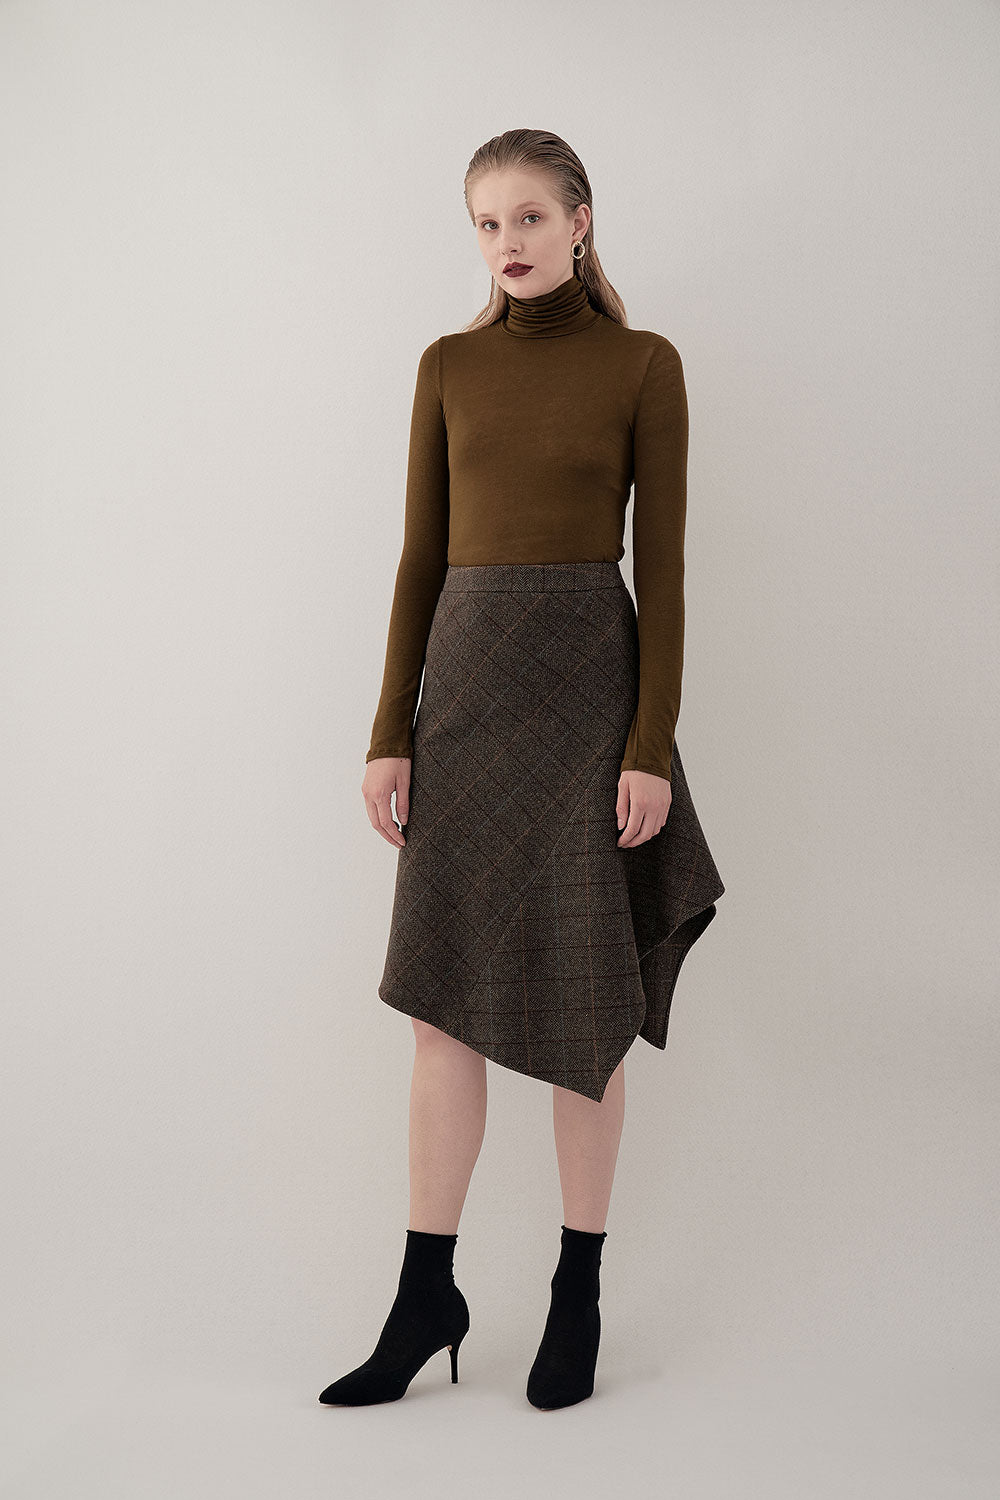 OLIVE NOMA LIGHT TURTLENECK